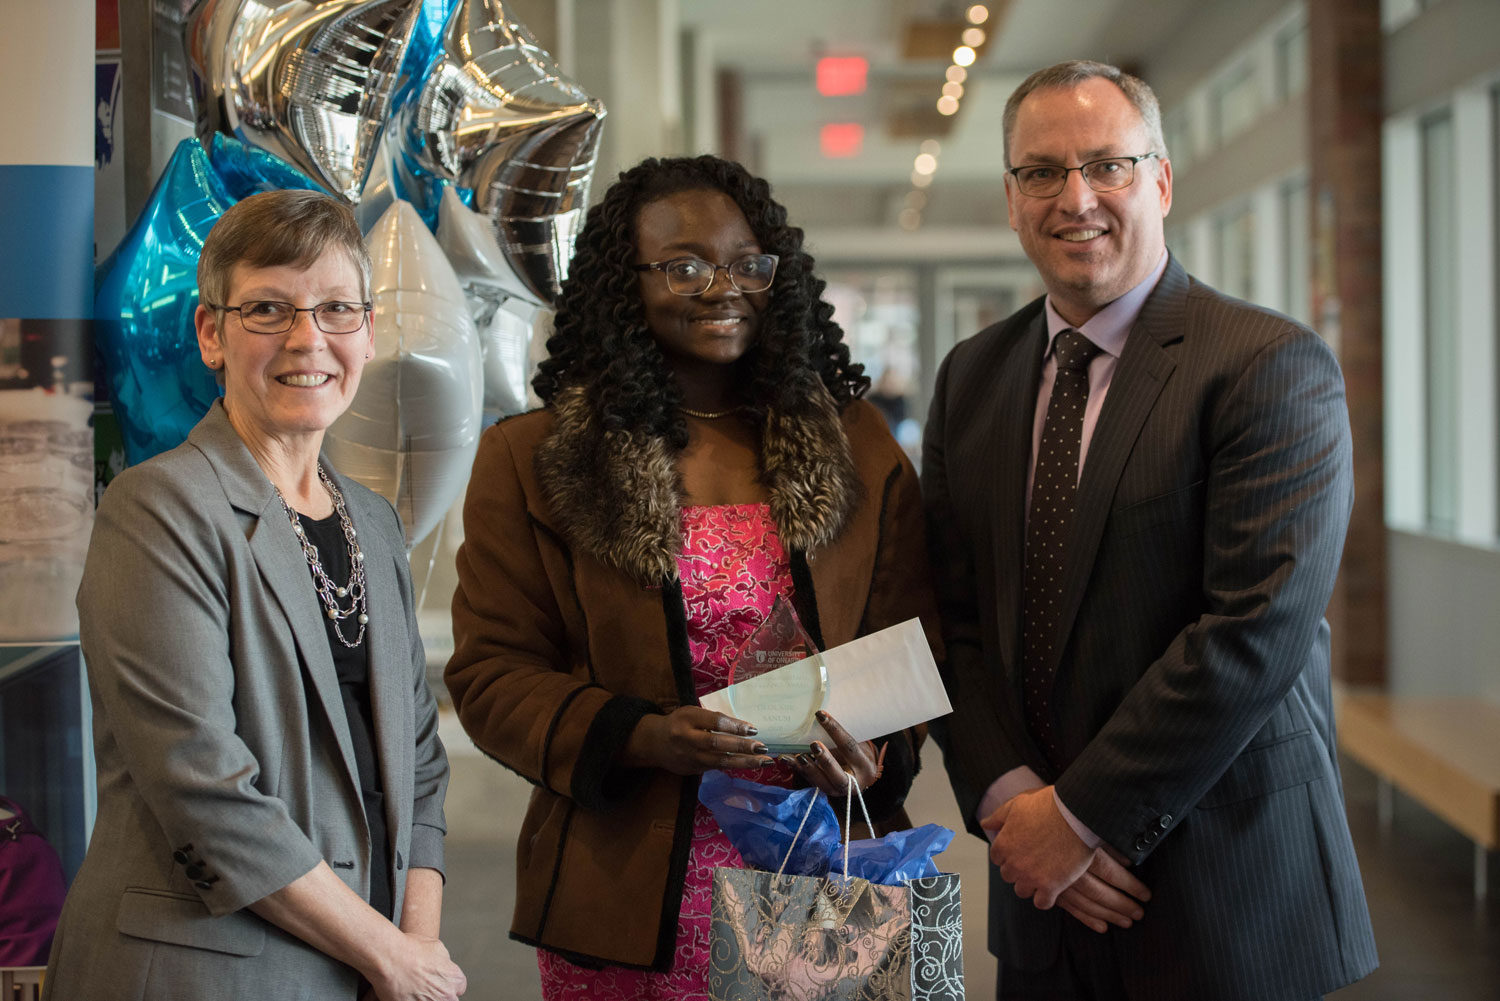 Teaching Assistant Excellence Award winner Ololade Sanusi poses with Drs Lori Livingston and Steven Murphy. ${altNumber}